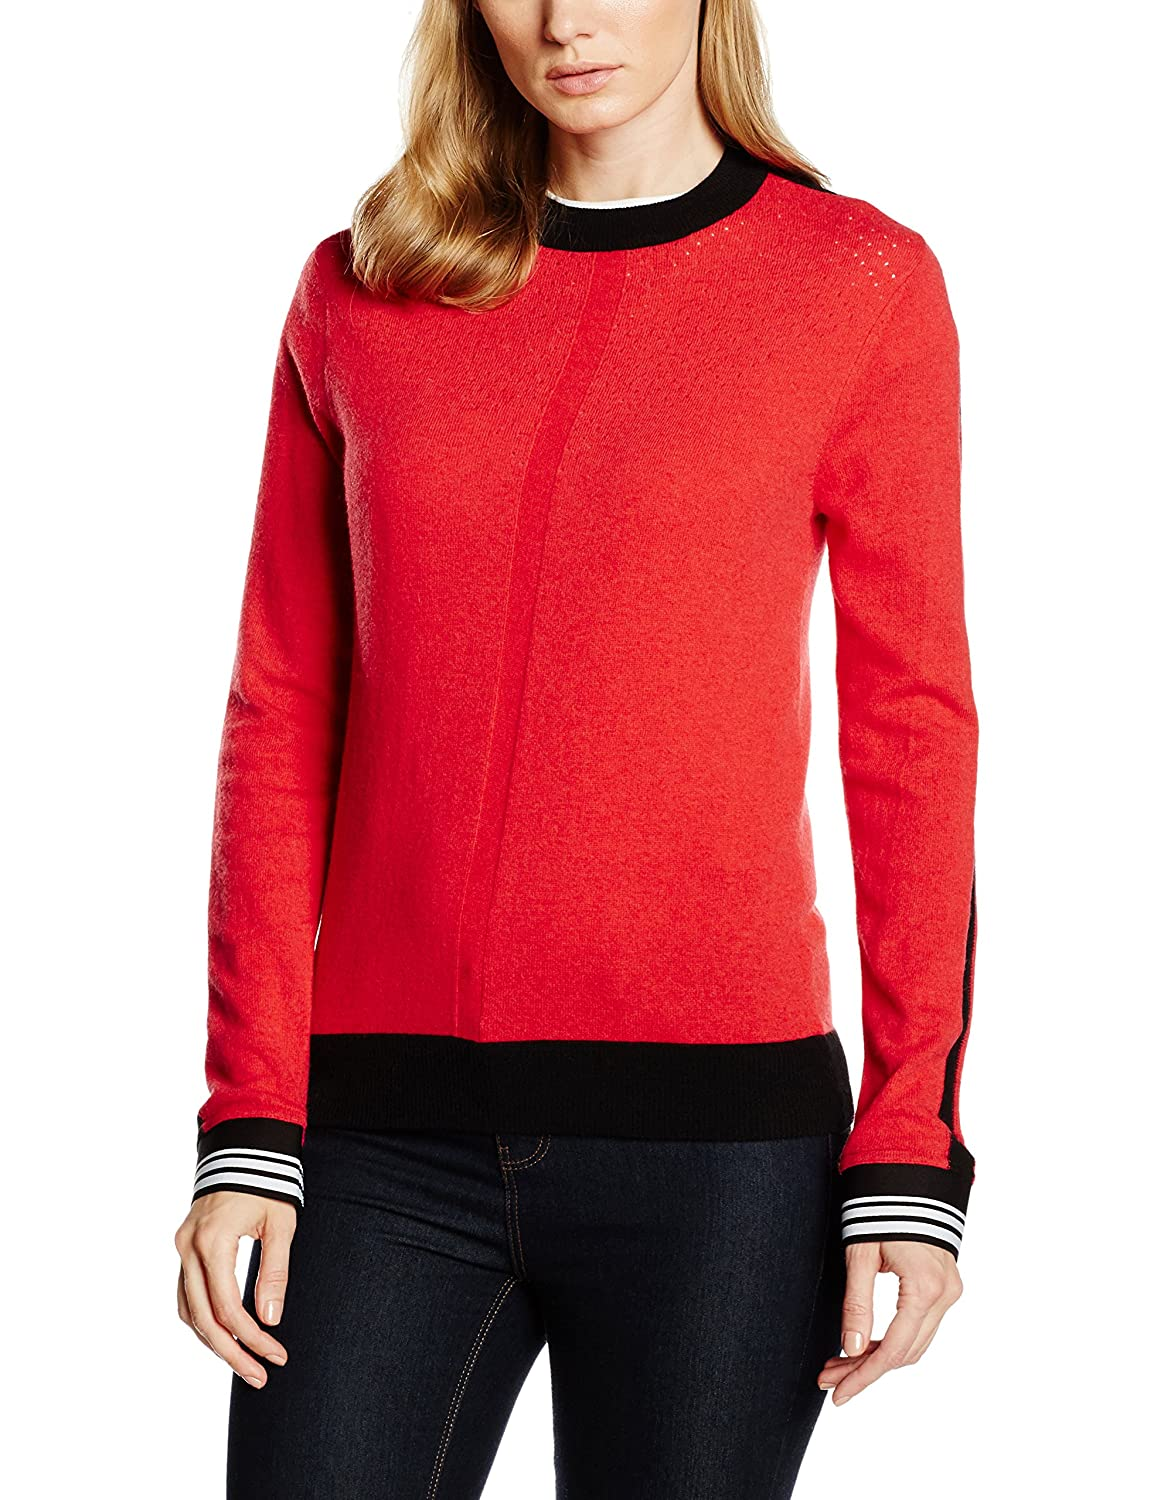 BOGNER FIRE + ICE Damen Strickpullover Ebony